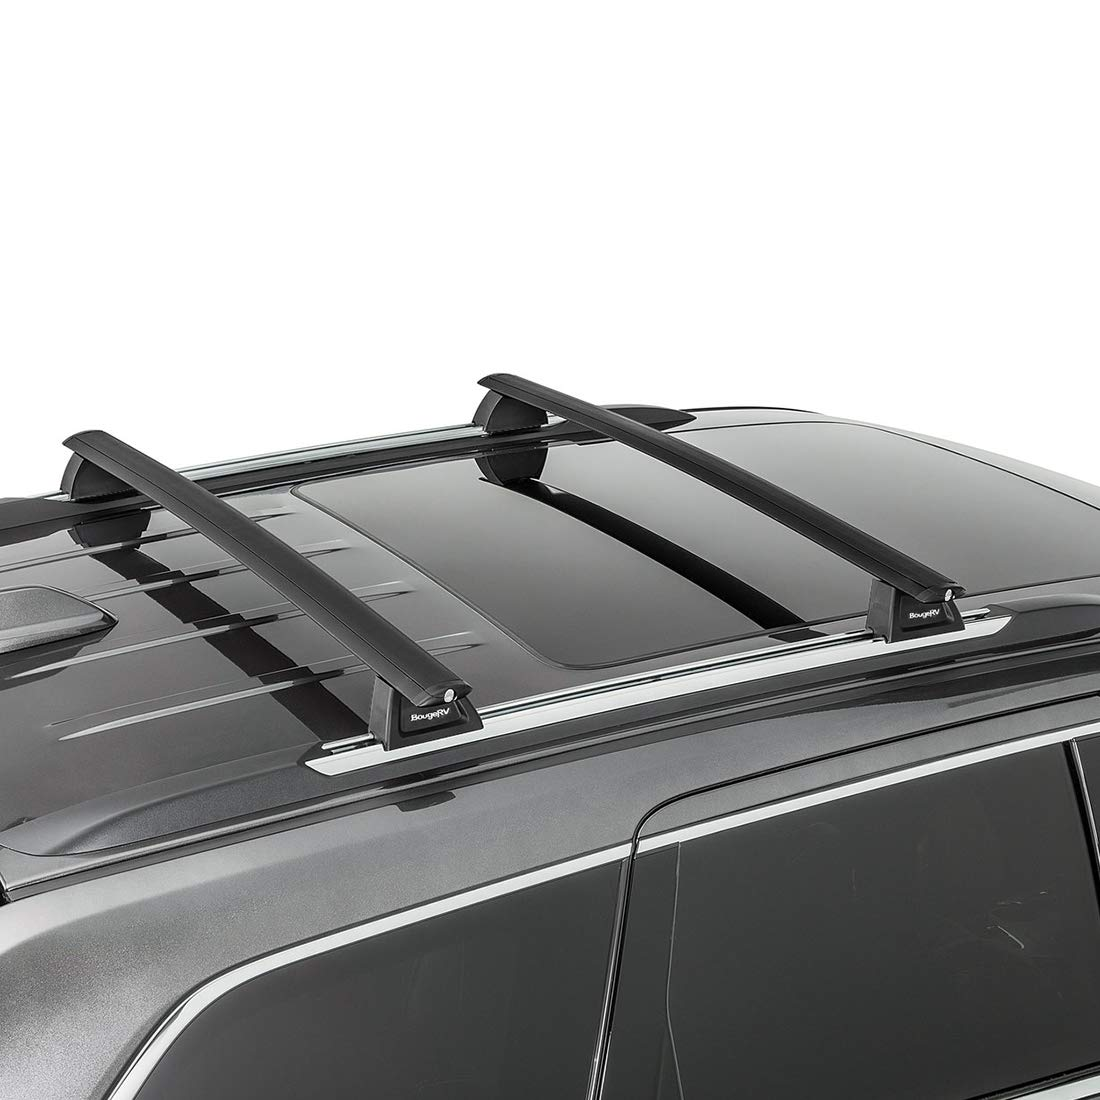 Aluminum Cross Bar Replacement for Rooftop Cargo Carrier Bag Luggage Kayak Canoe Bike Snowboard Skiboard BougeRV Car Roof Rack Cross Bars for 2014-2019 Nissan Rogue with Side Rails